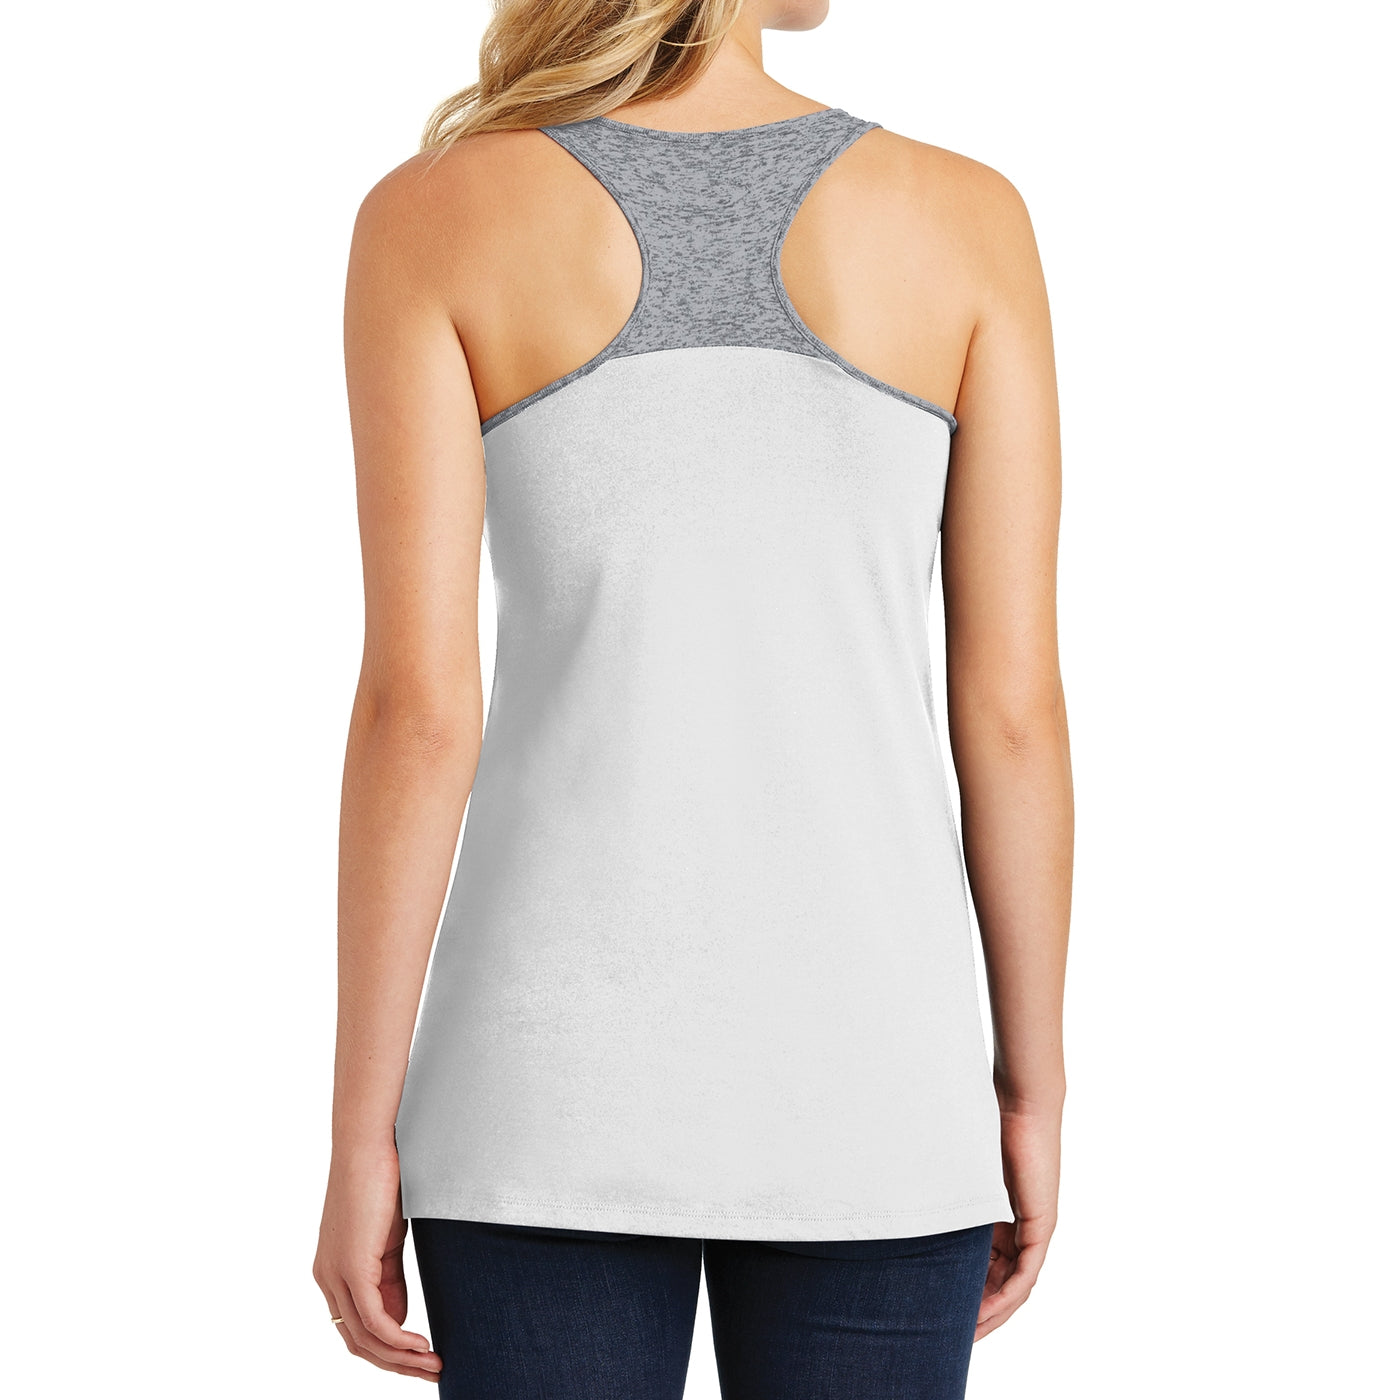 District Juniors Varsity Tank - White/ Heathered Nickel